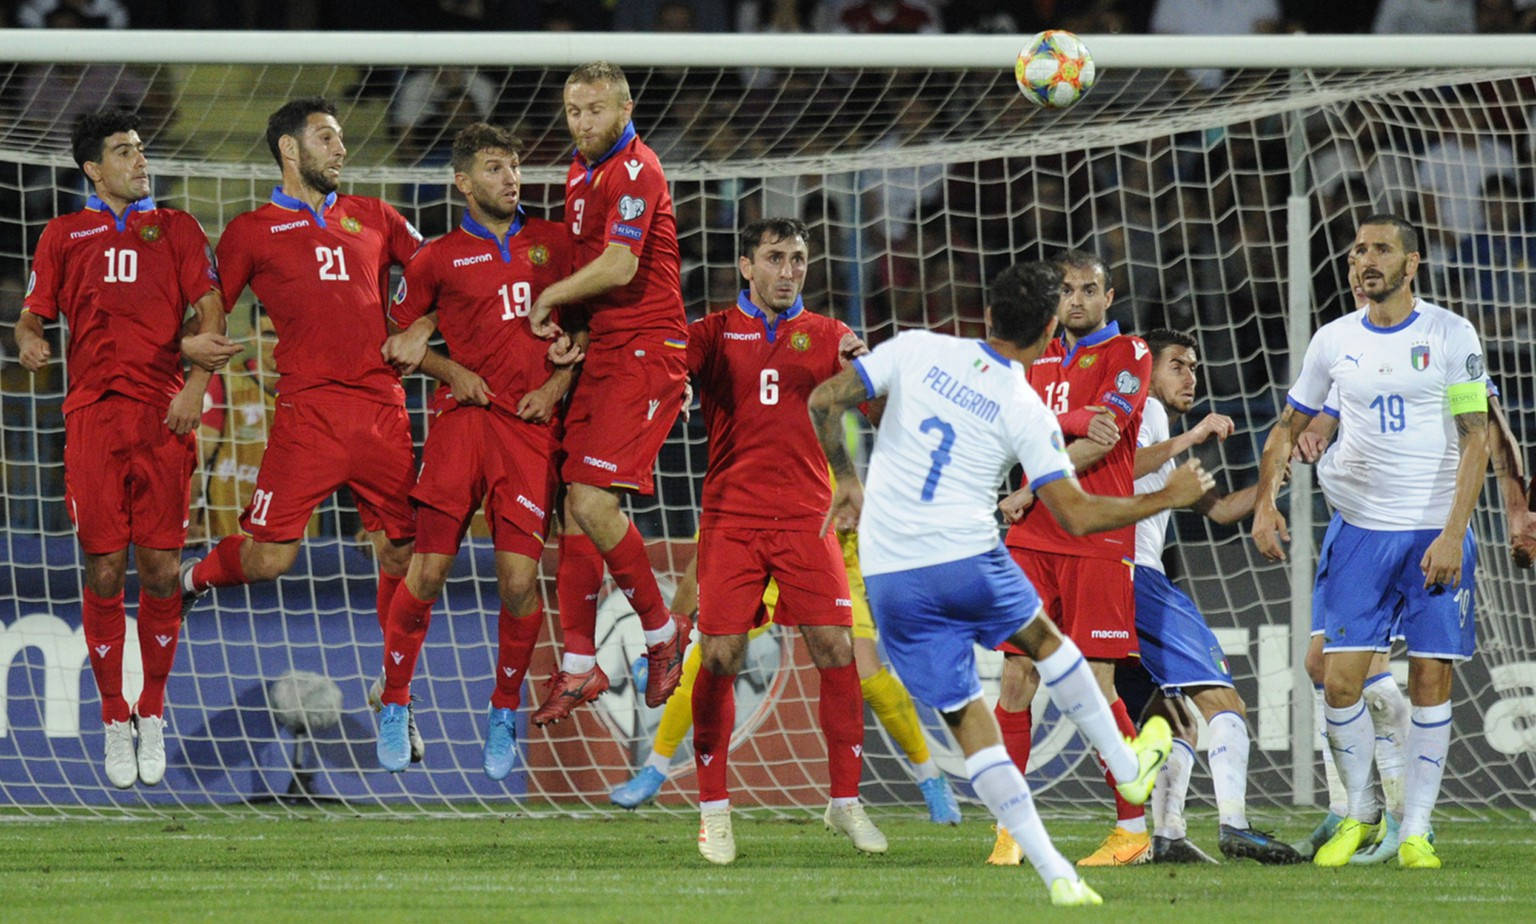 Italy's Lorenzo Pellegrini, front, scores a goal during the Euro 2020 group J qualifying soccer match between Armenia and Italy at the Vazgen Sargsyan Republican stadium in Yerevan, Armenia, Thursday, Sept. 5, 2019. (AP Photo/Hakob Berberyan)